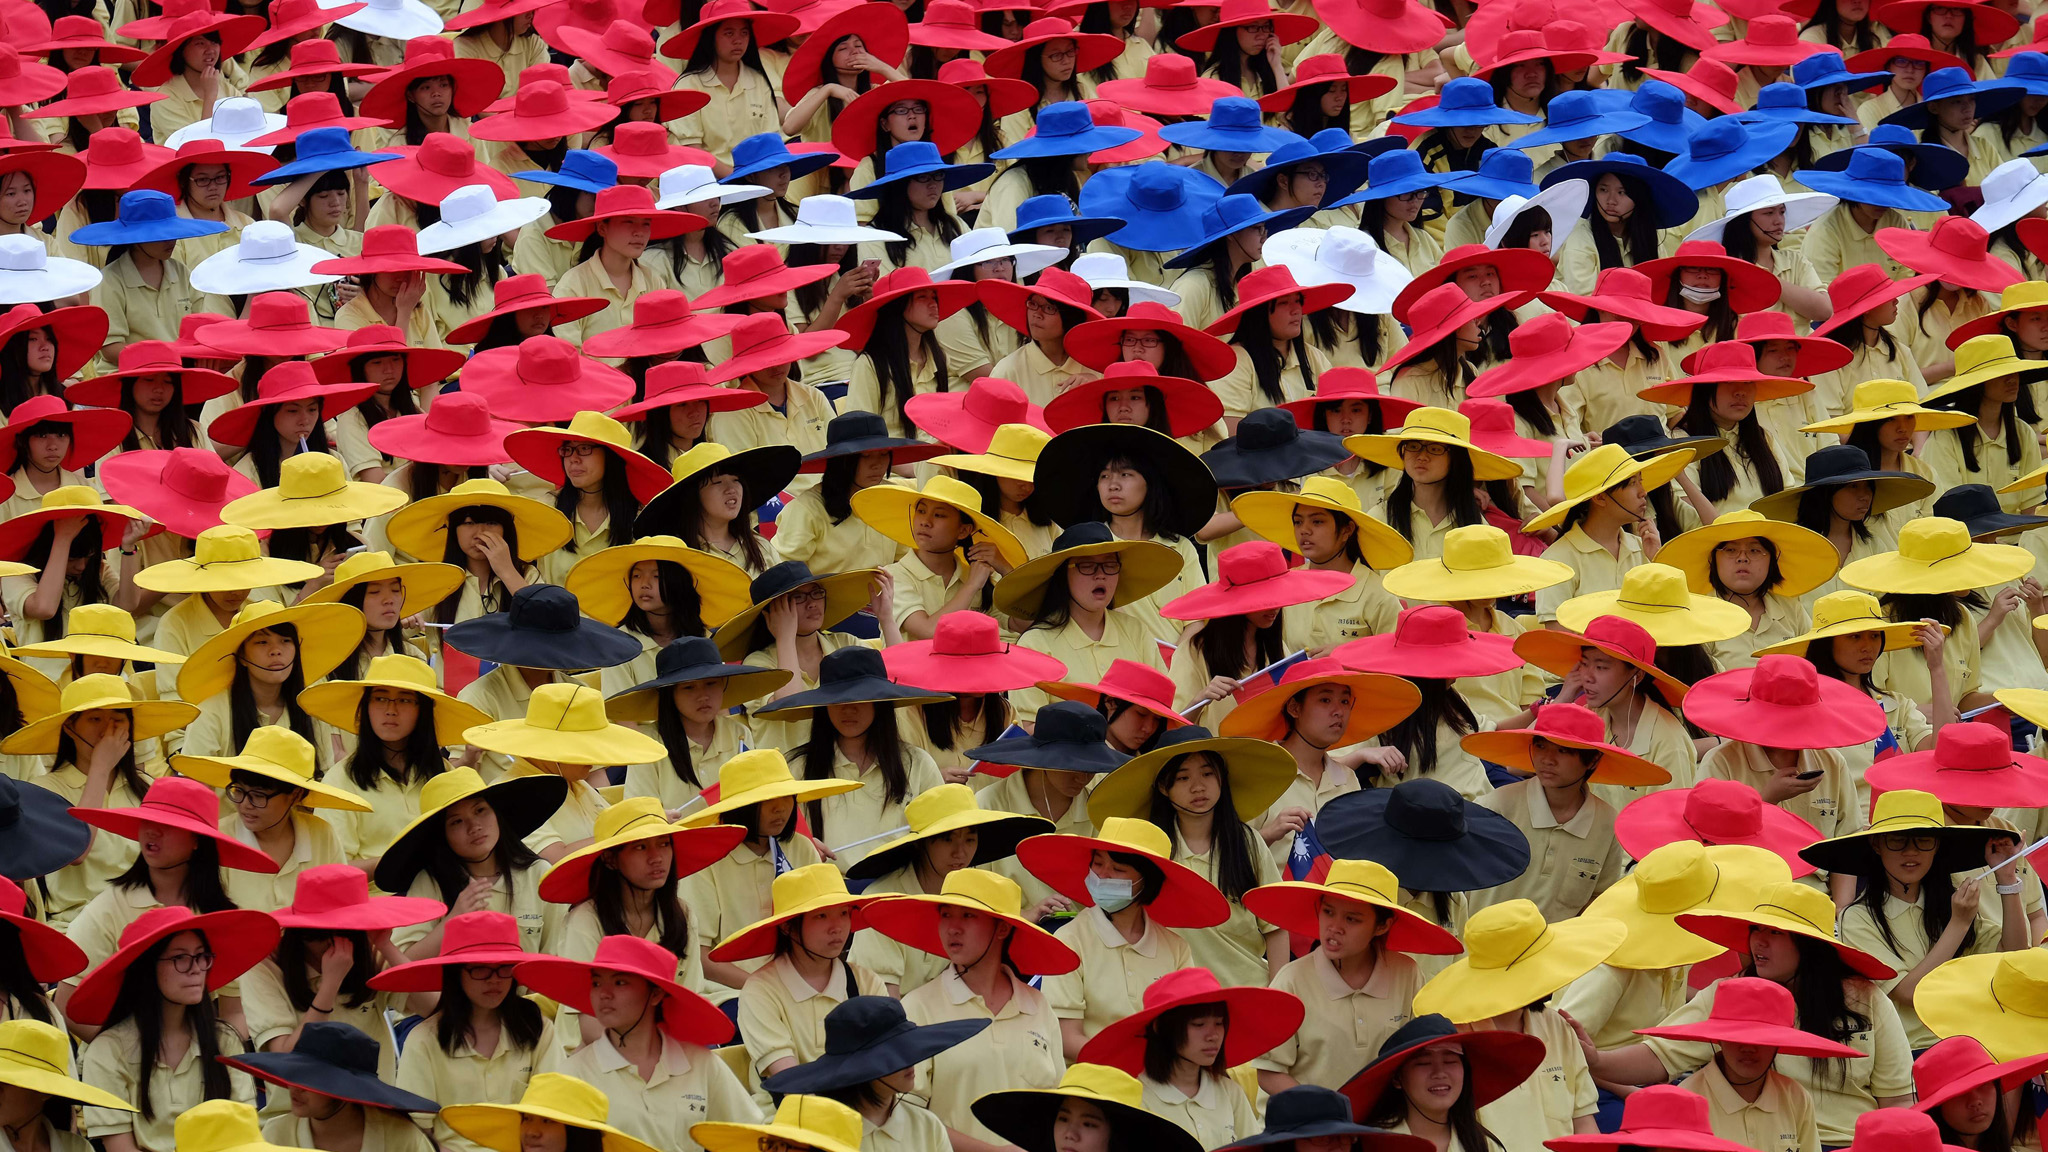 Students wear colorful hats during the national day anniversary in front of the Presidential Palace in Taipei